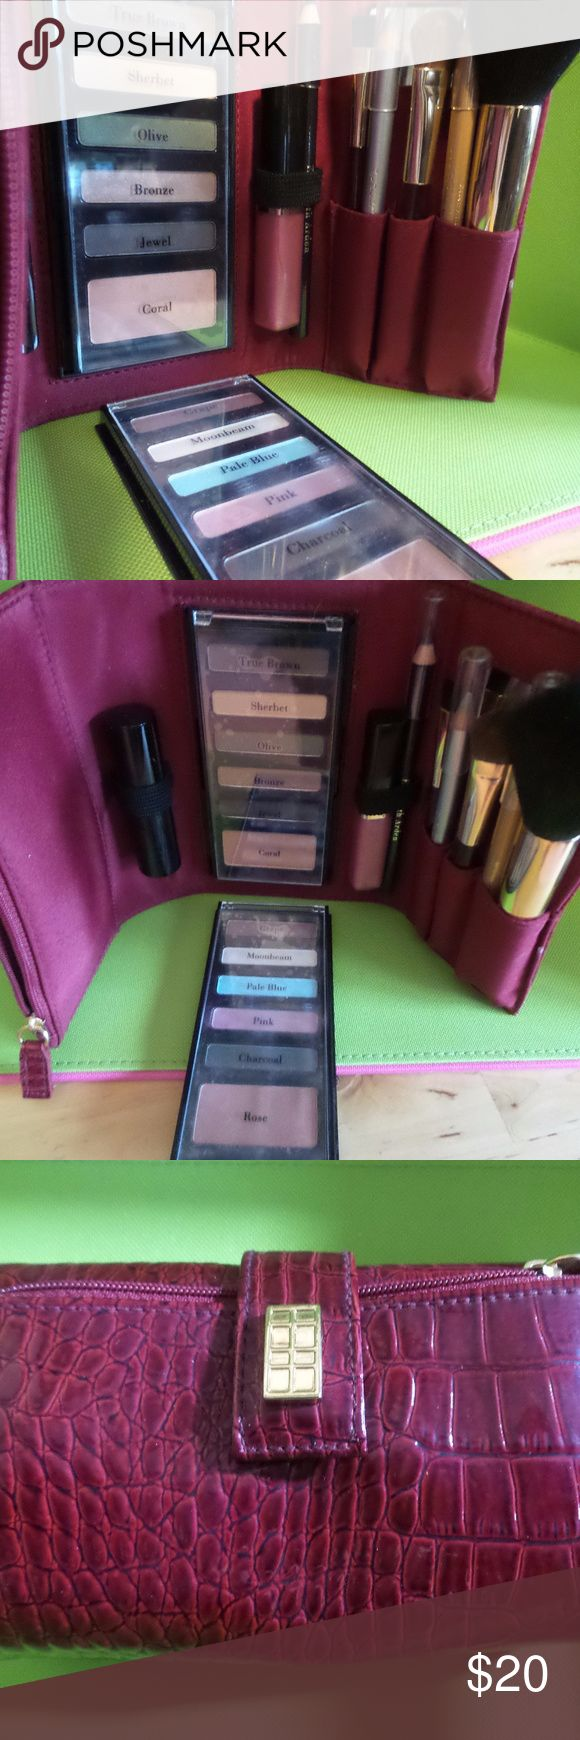 NEW ELIZABETH ARDEN 11 Piece Beauty Collection Comes all in a beautiful faux leather case. Includes 10 shadows in grape, moonbeam, pale blue, pink, charcoal, true brown, sherbet, olive, bronze, jewel. 2 blushes in rose and coral. 1 lipstick in Solar 1 high gloss lip shine in pink sparkle 3 eye pencils in smokey black, gold, silver. 3 make-up brushes. Elizabeth Arden Makeup